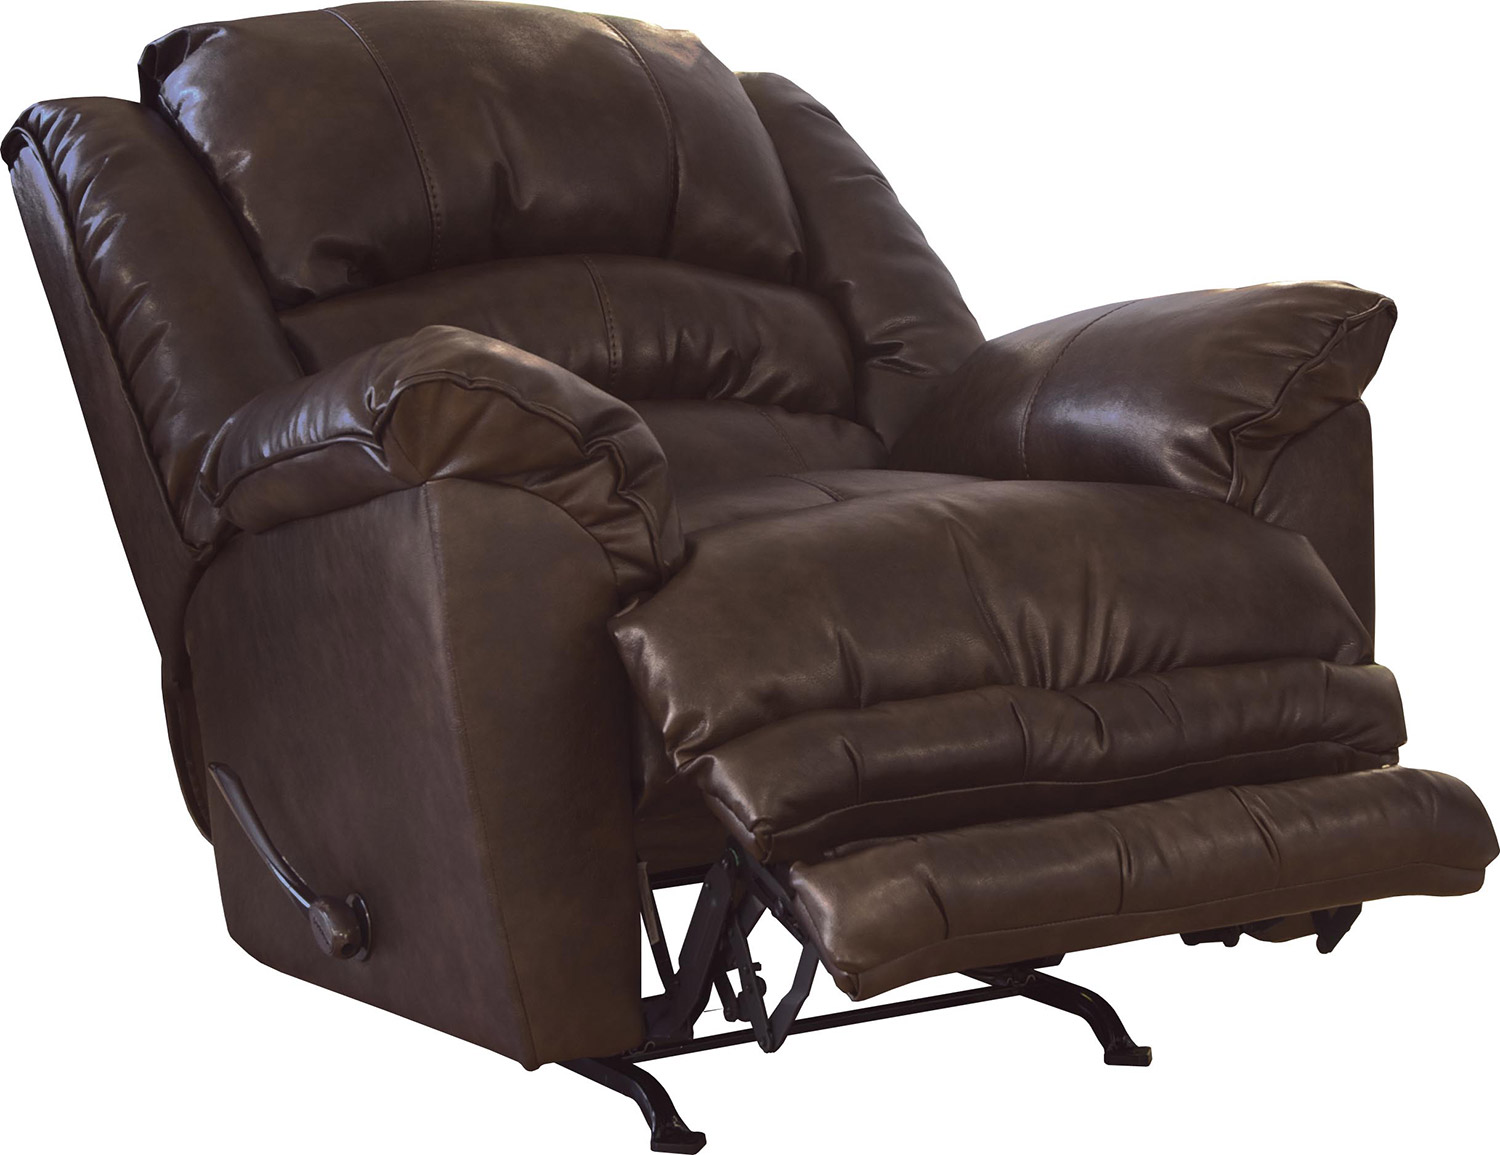 CatNapper Filmore Bonded Leather Recliner Chair - Timber